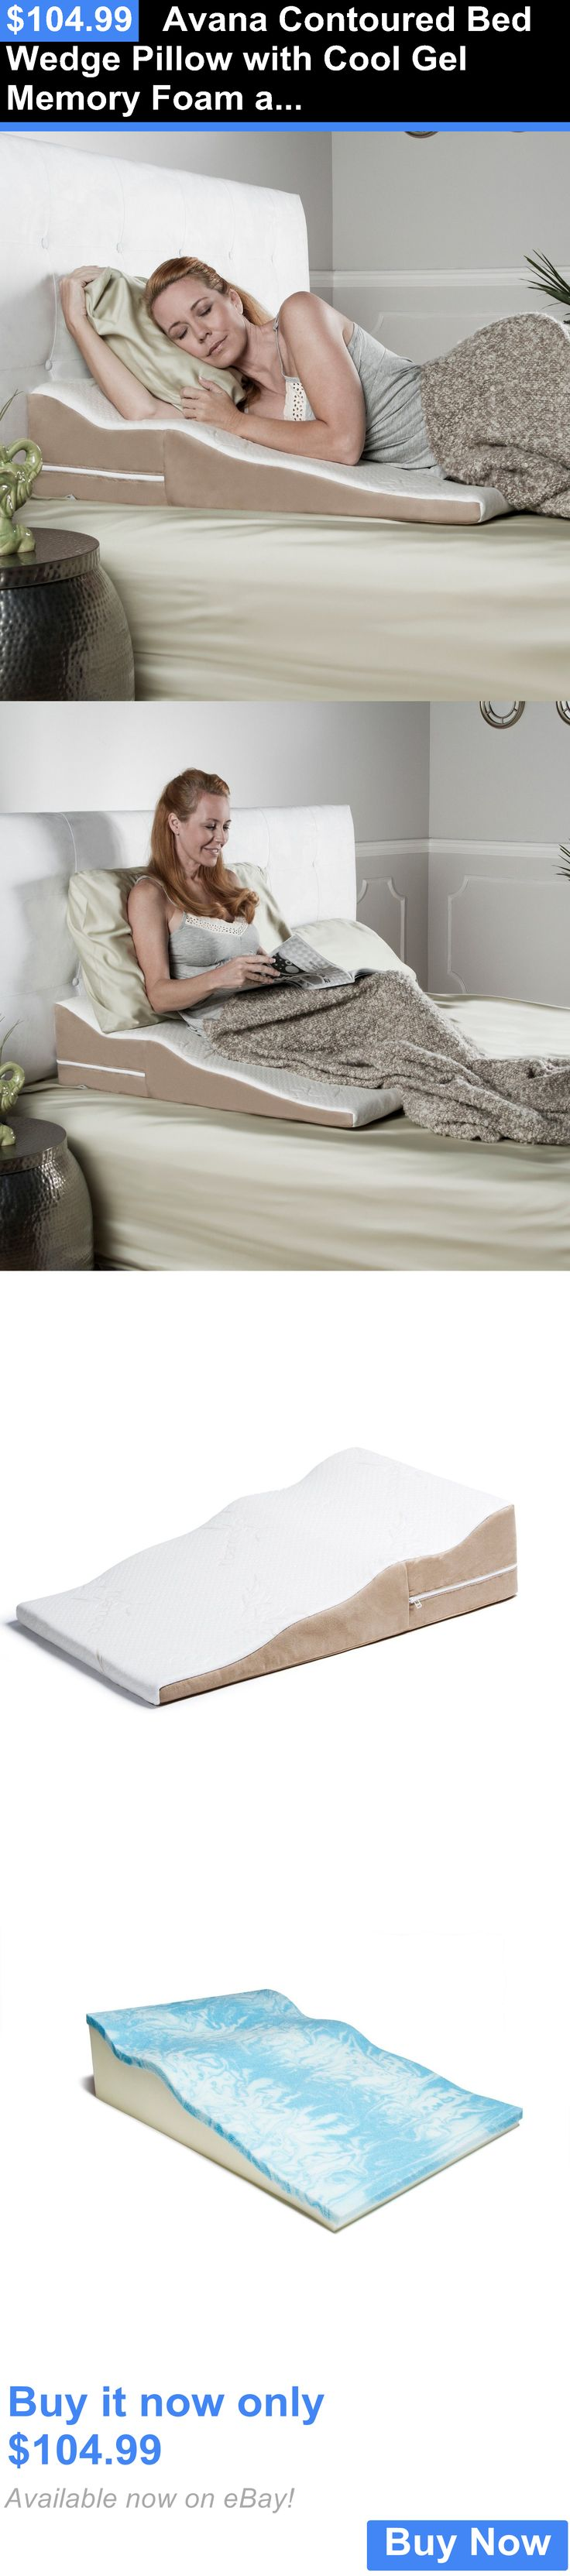 wedges and bed positioners avana contoured bed wedge pillow with cool gel memory foam and